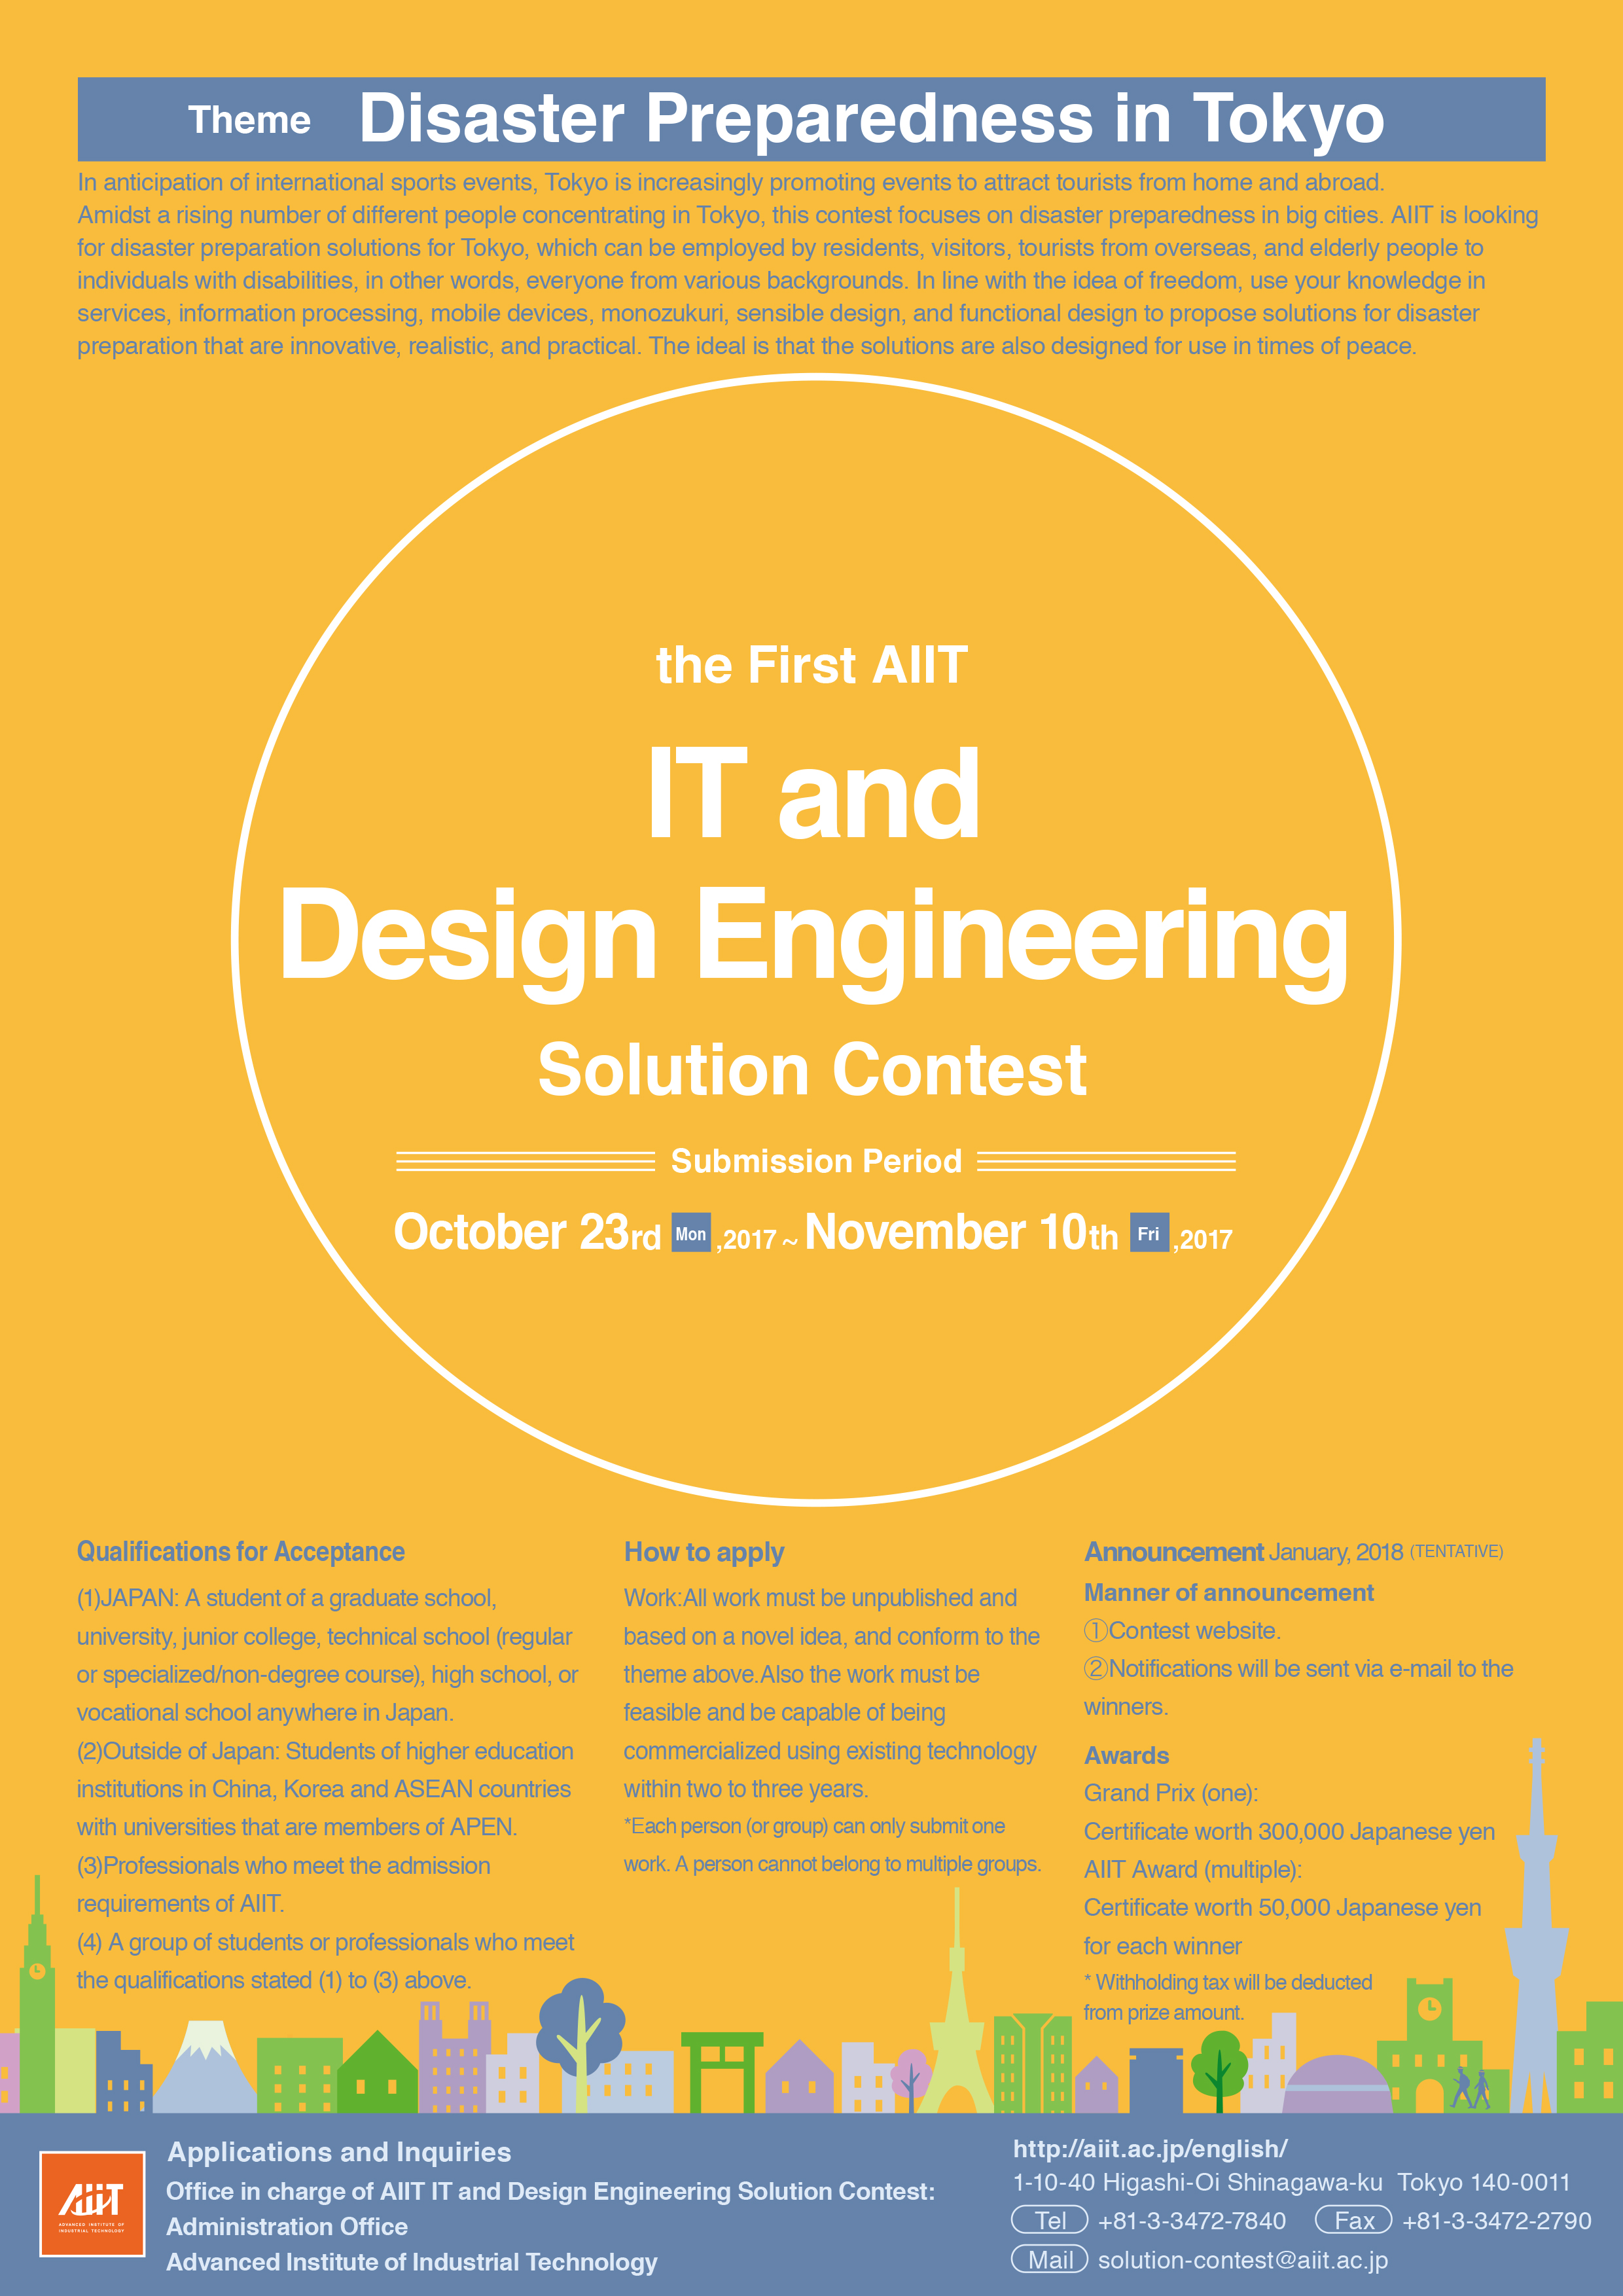 The First AIIT IT and Design Engineering Solution Contest (images)